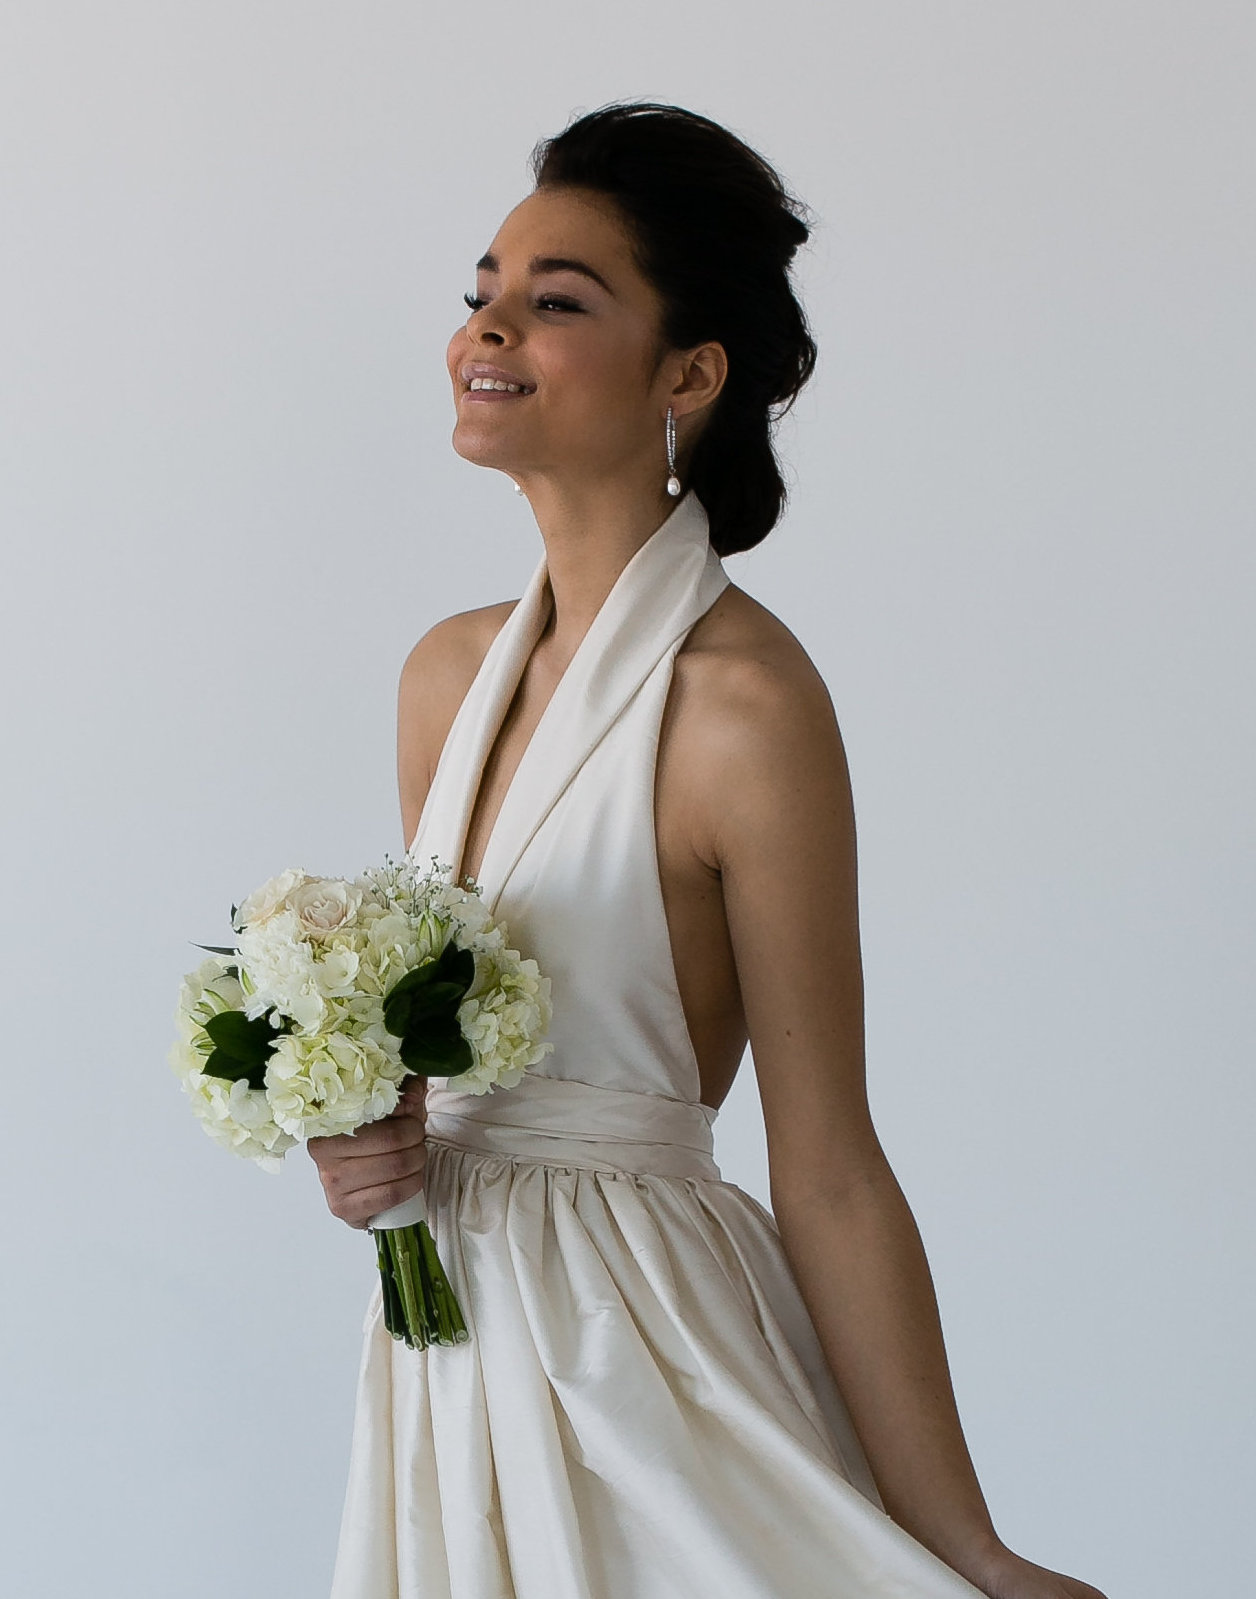 View More: http://emiliajane.pass.us/mignonette-bridal-shoot